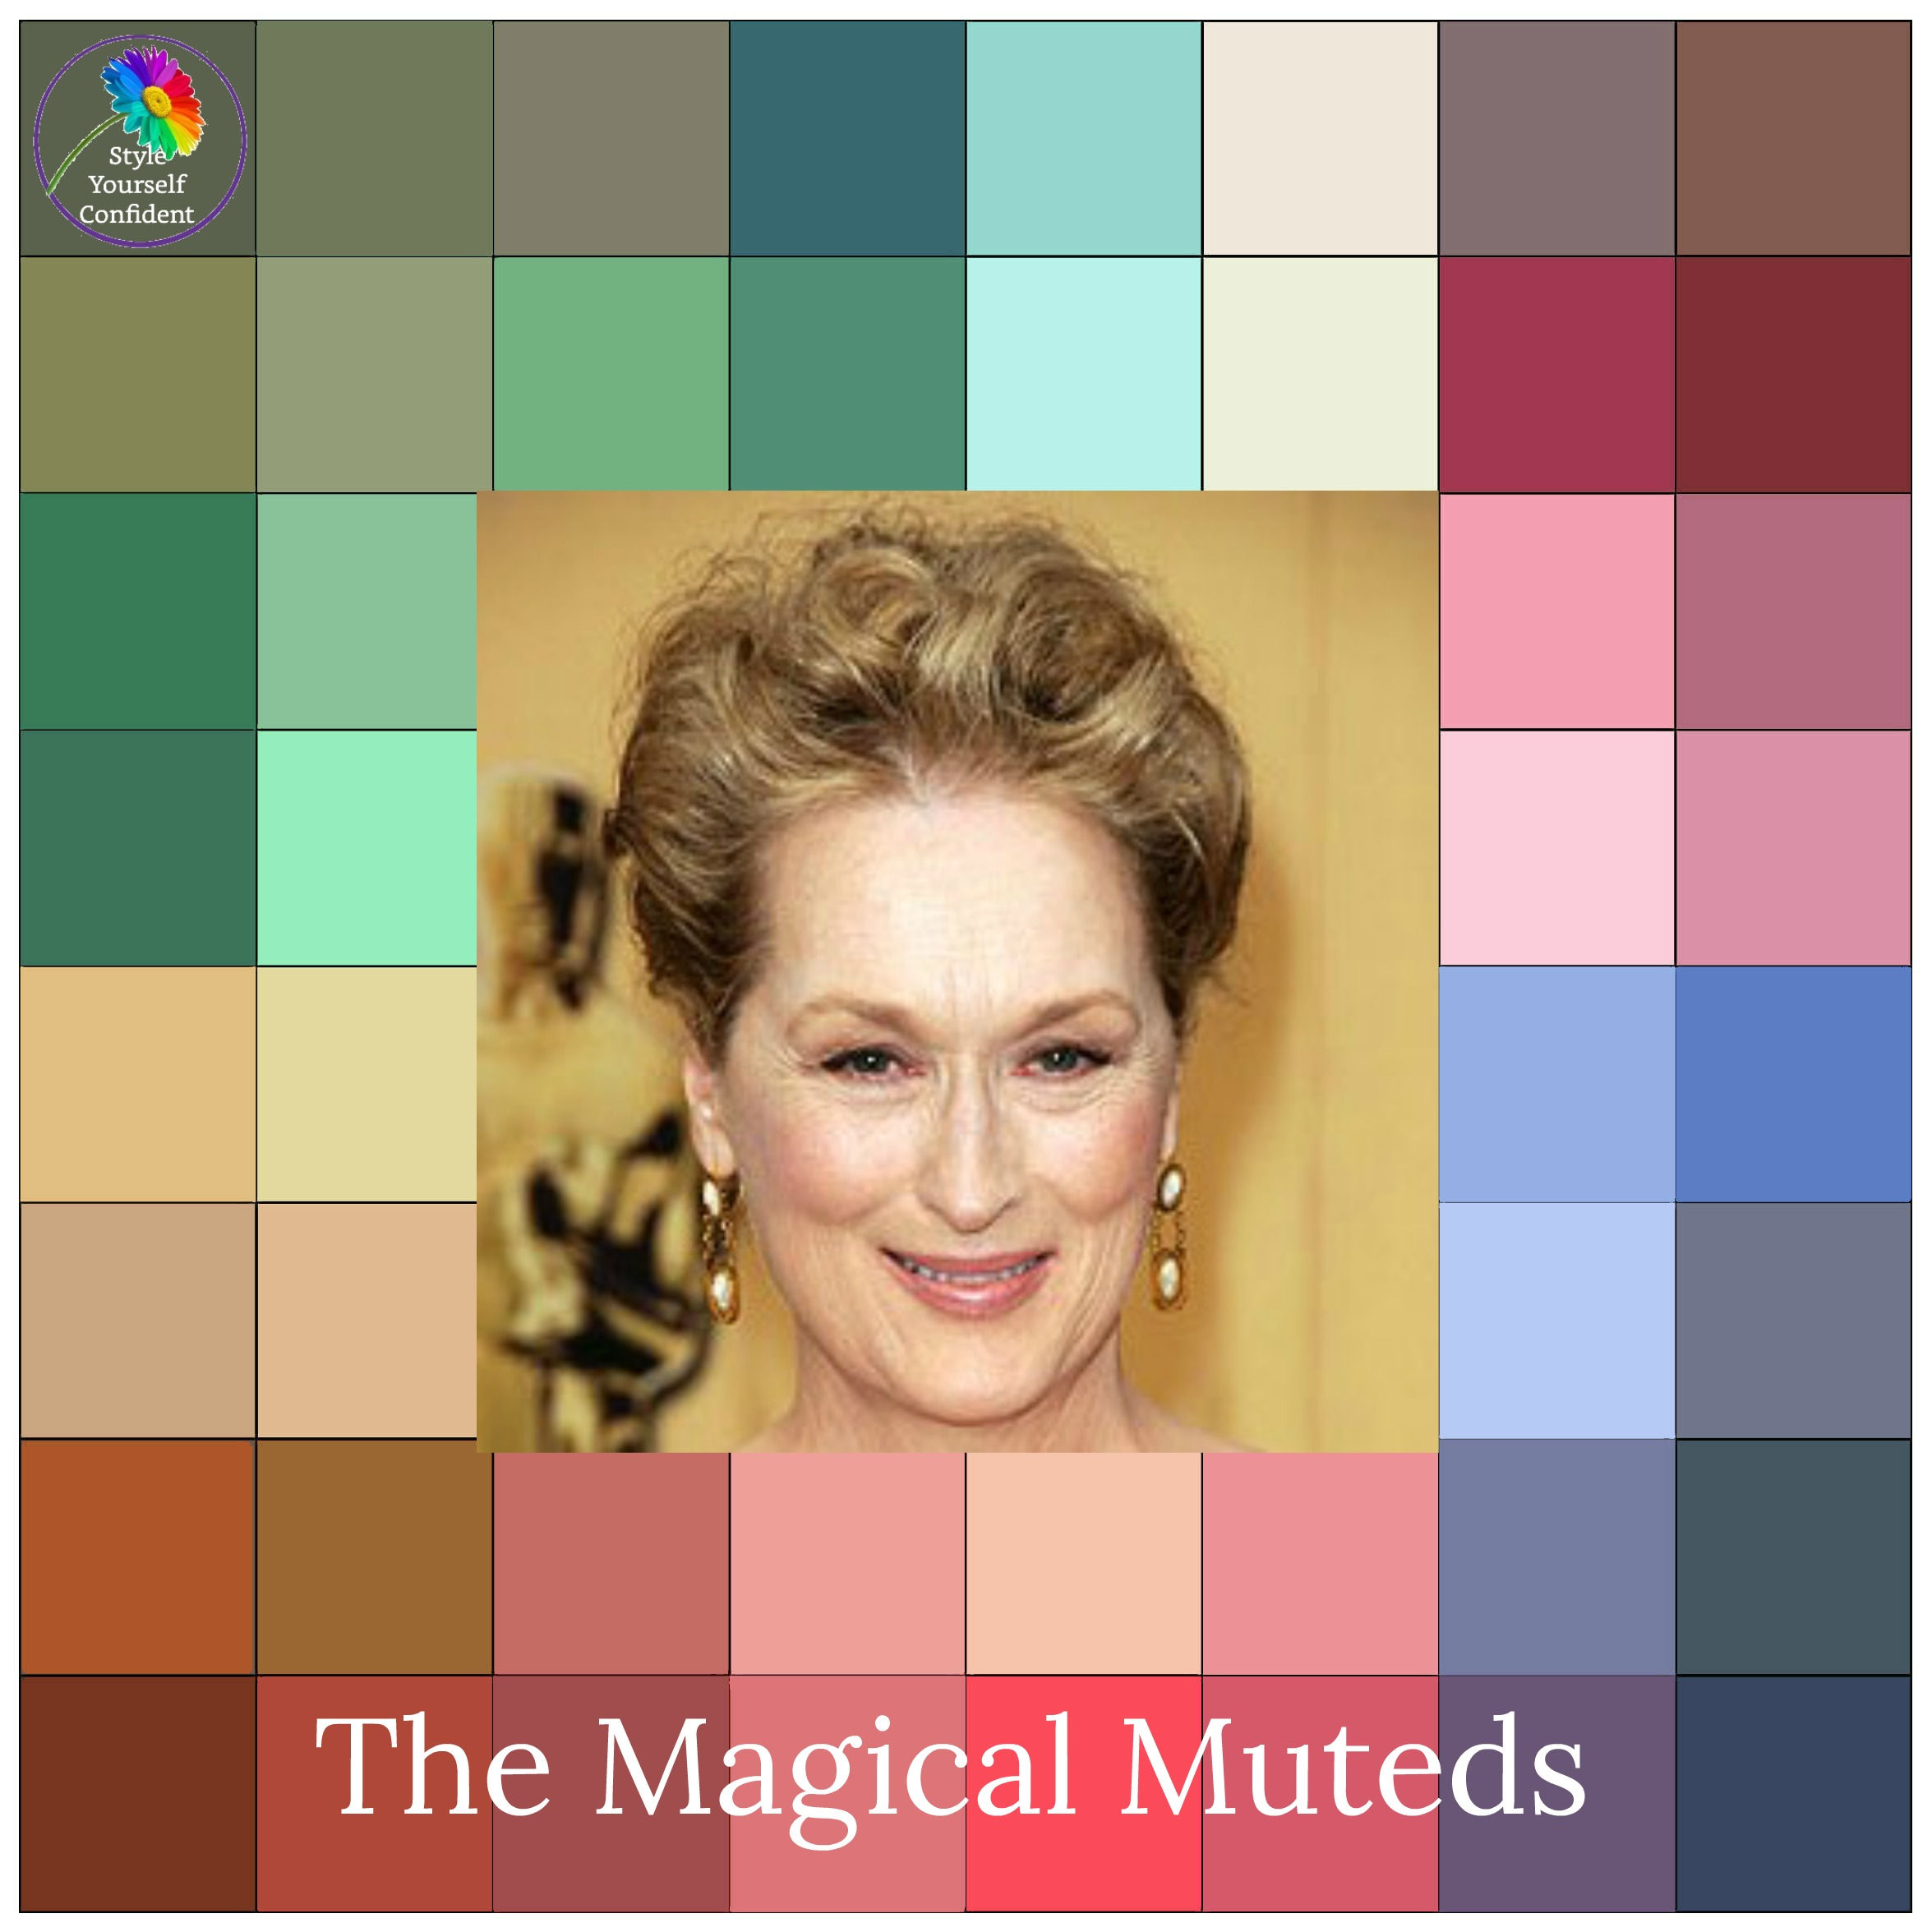 The MUTED color family #color analysis #Muted color family #Meryl Streep https://www.style-yourself-confident.com/color-analysis-muted.html